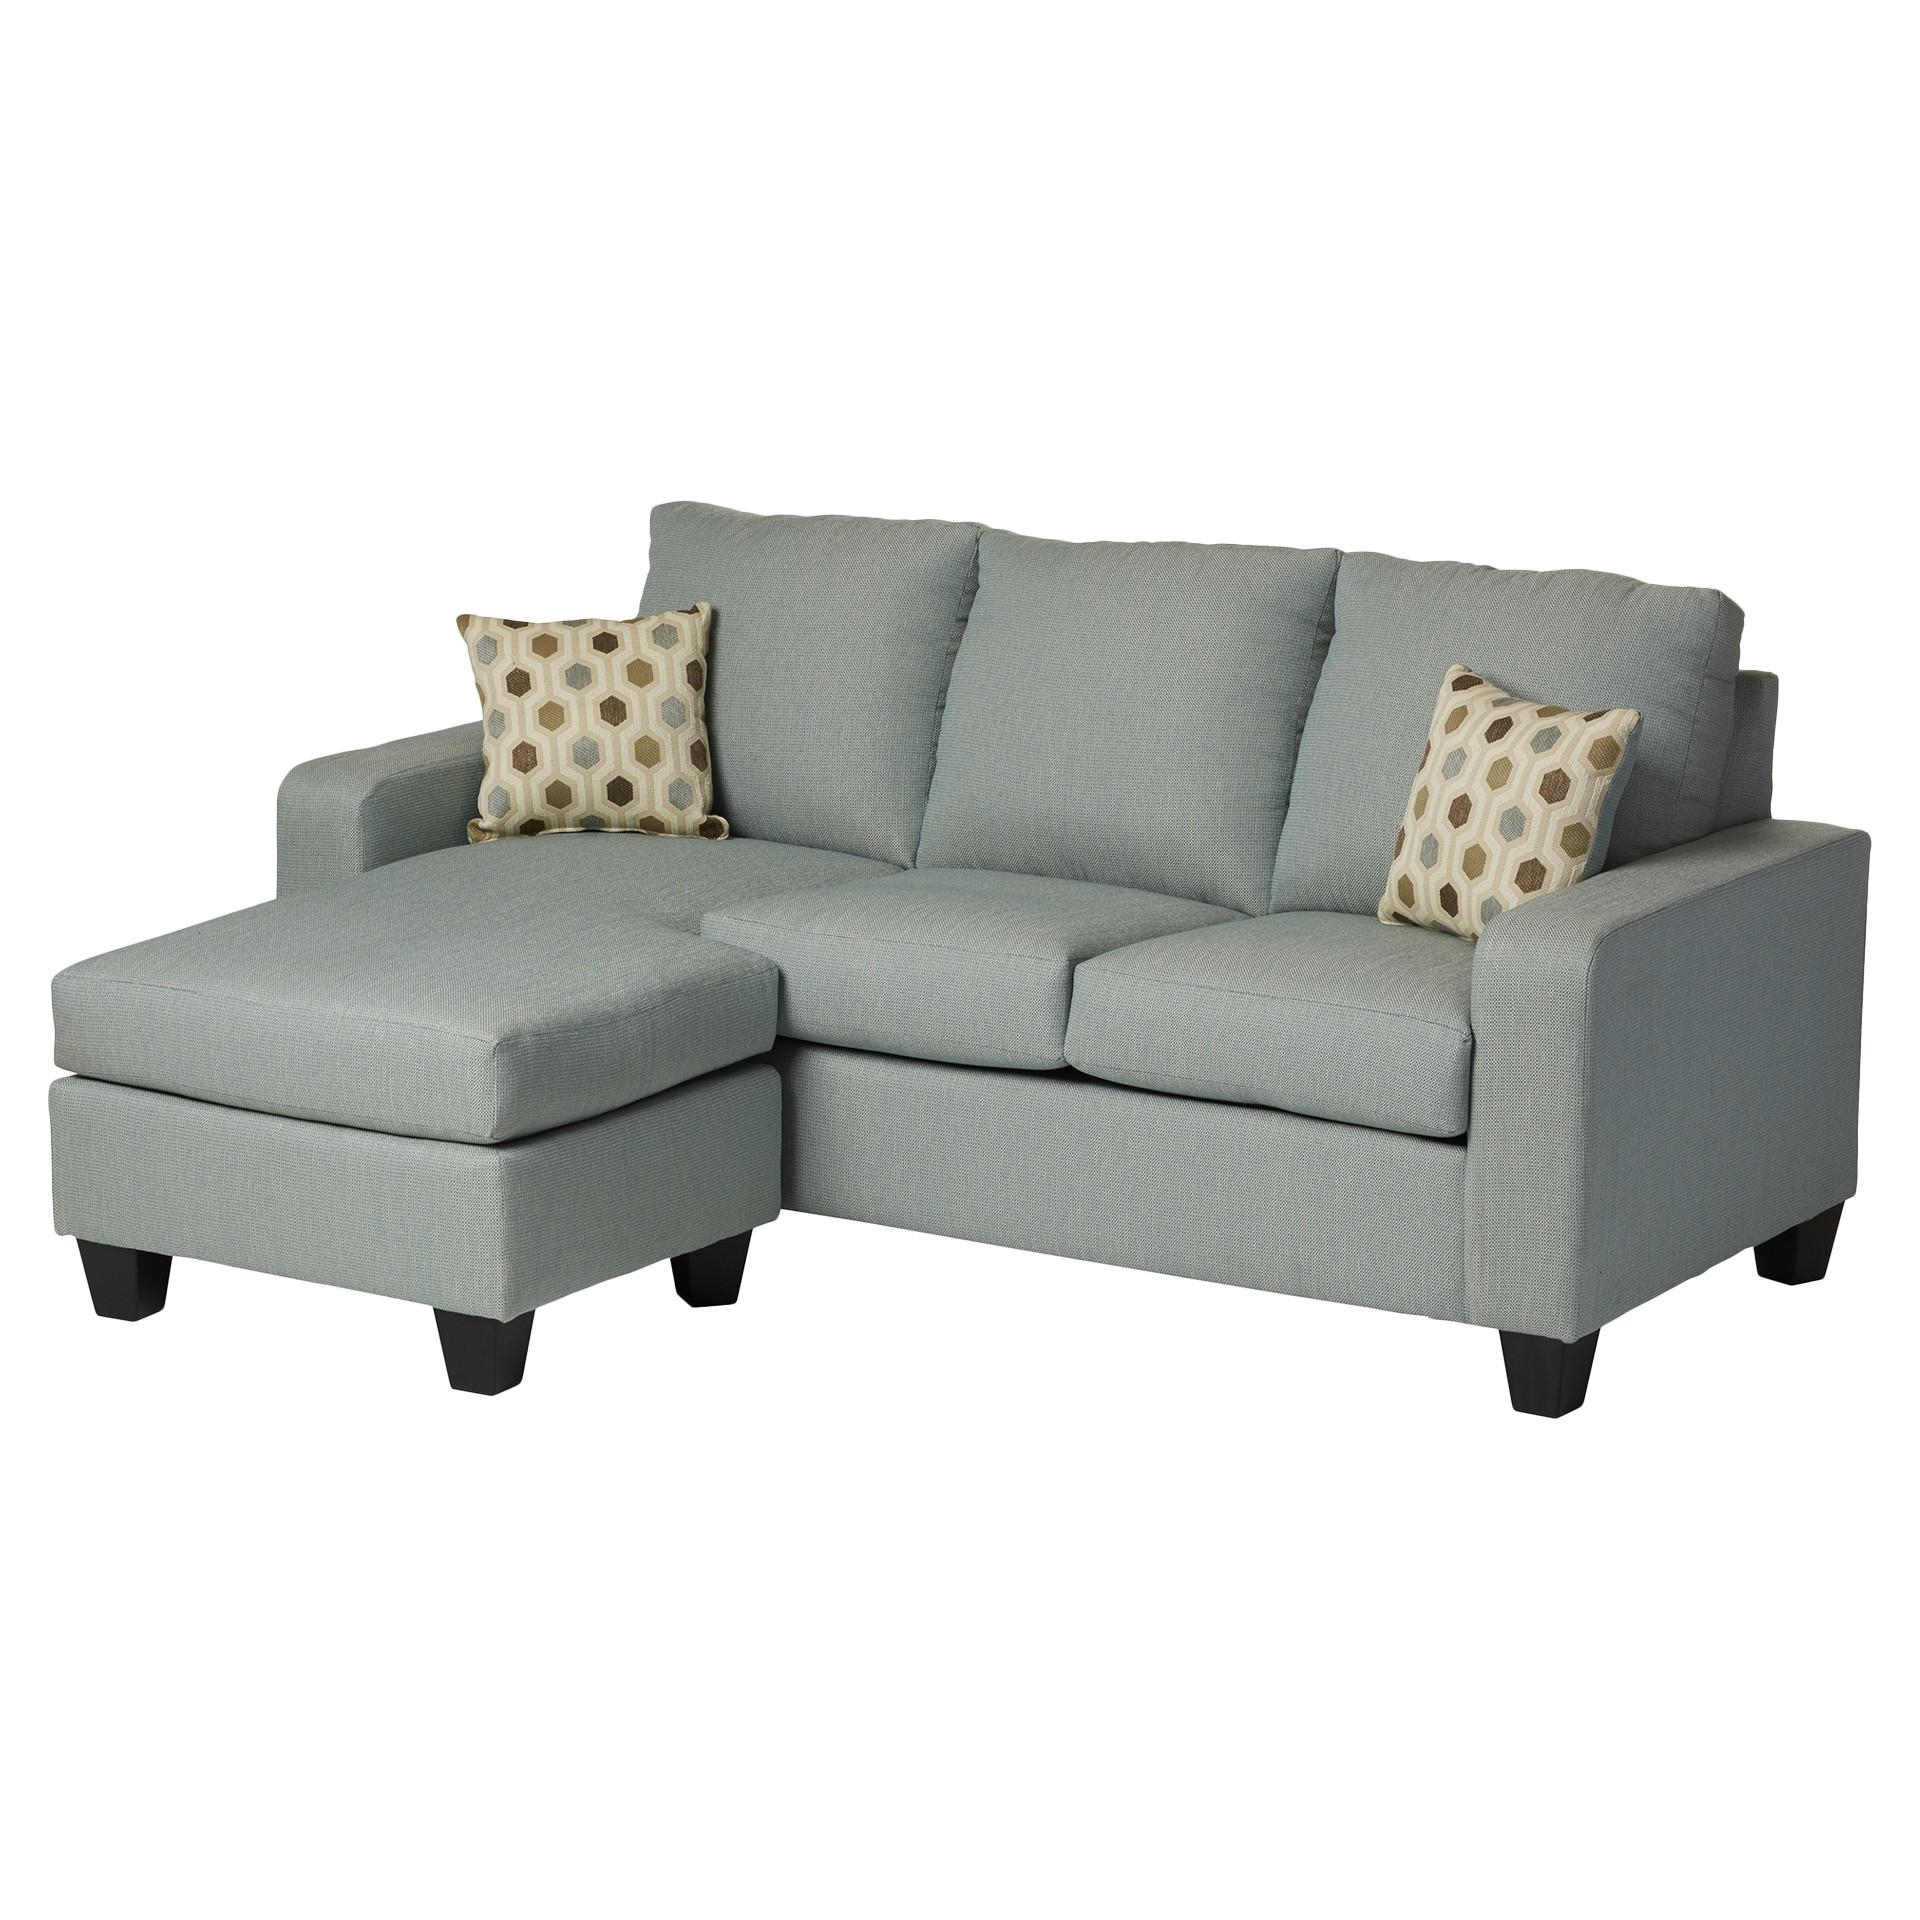 Good Cheap Furniture Online: 20 Ideas Of Sofas Cheap Prices